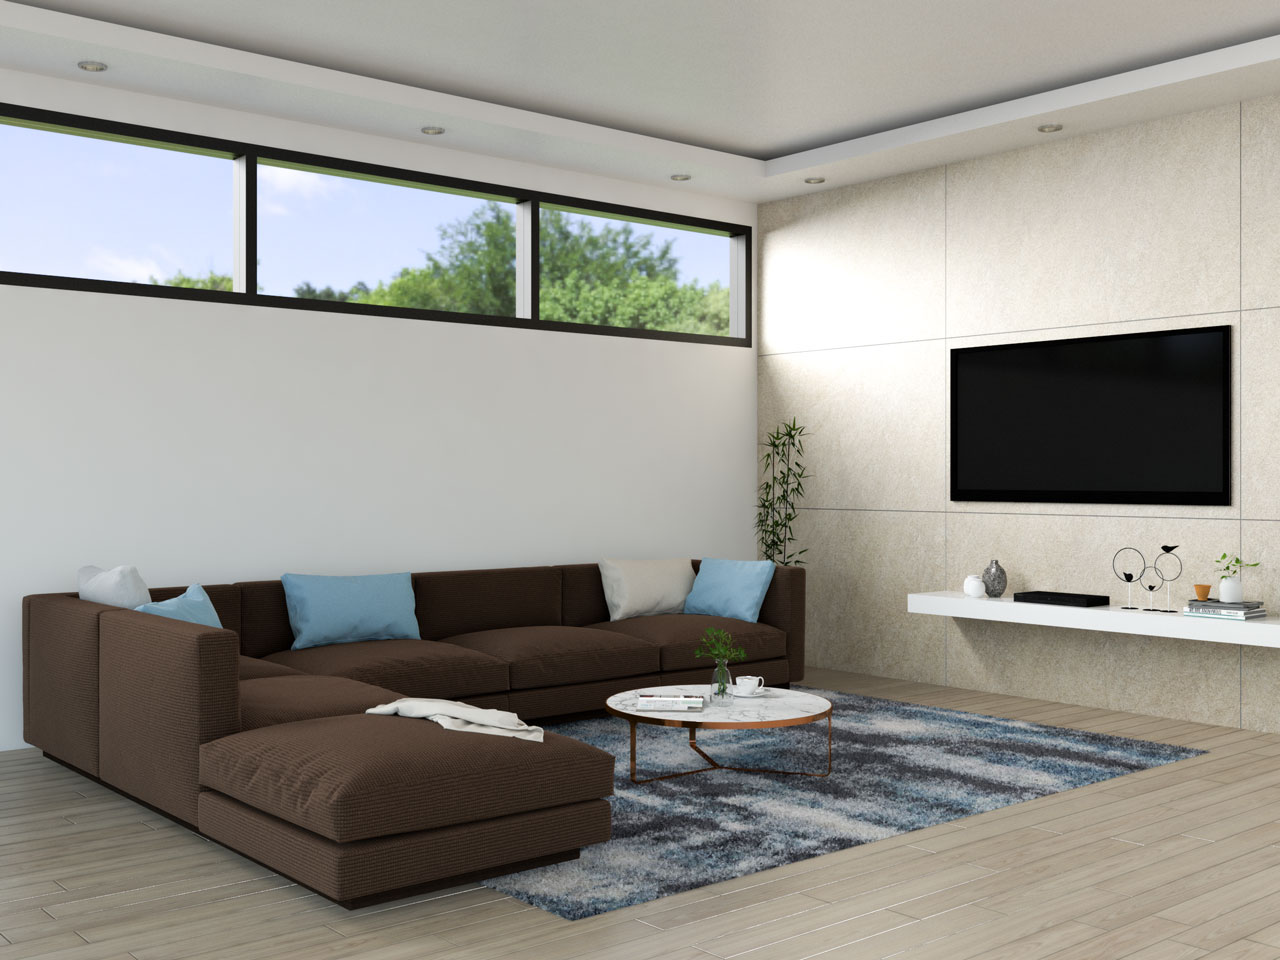 Brown sofa with light blue accents